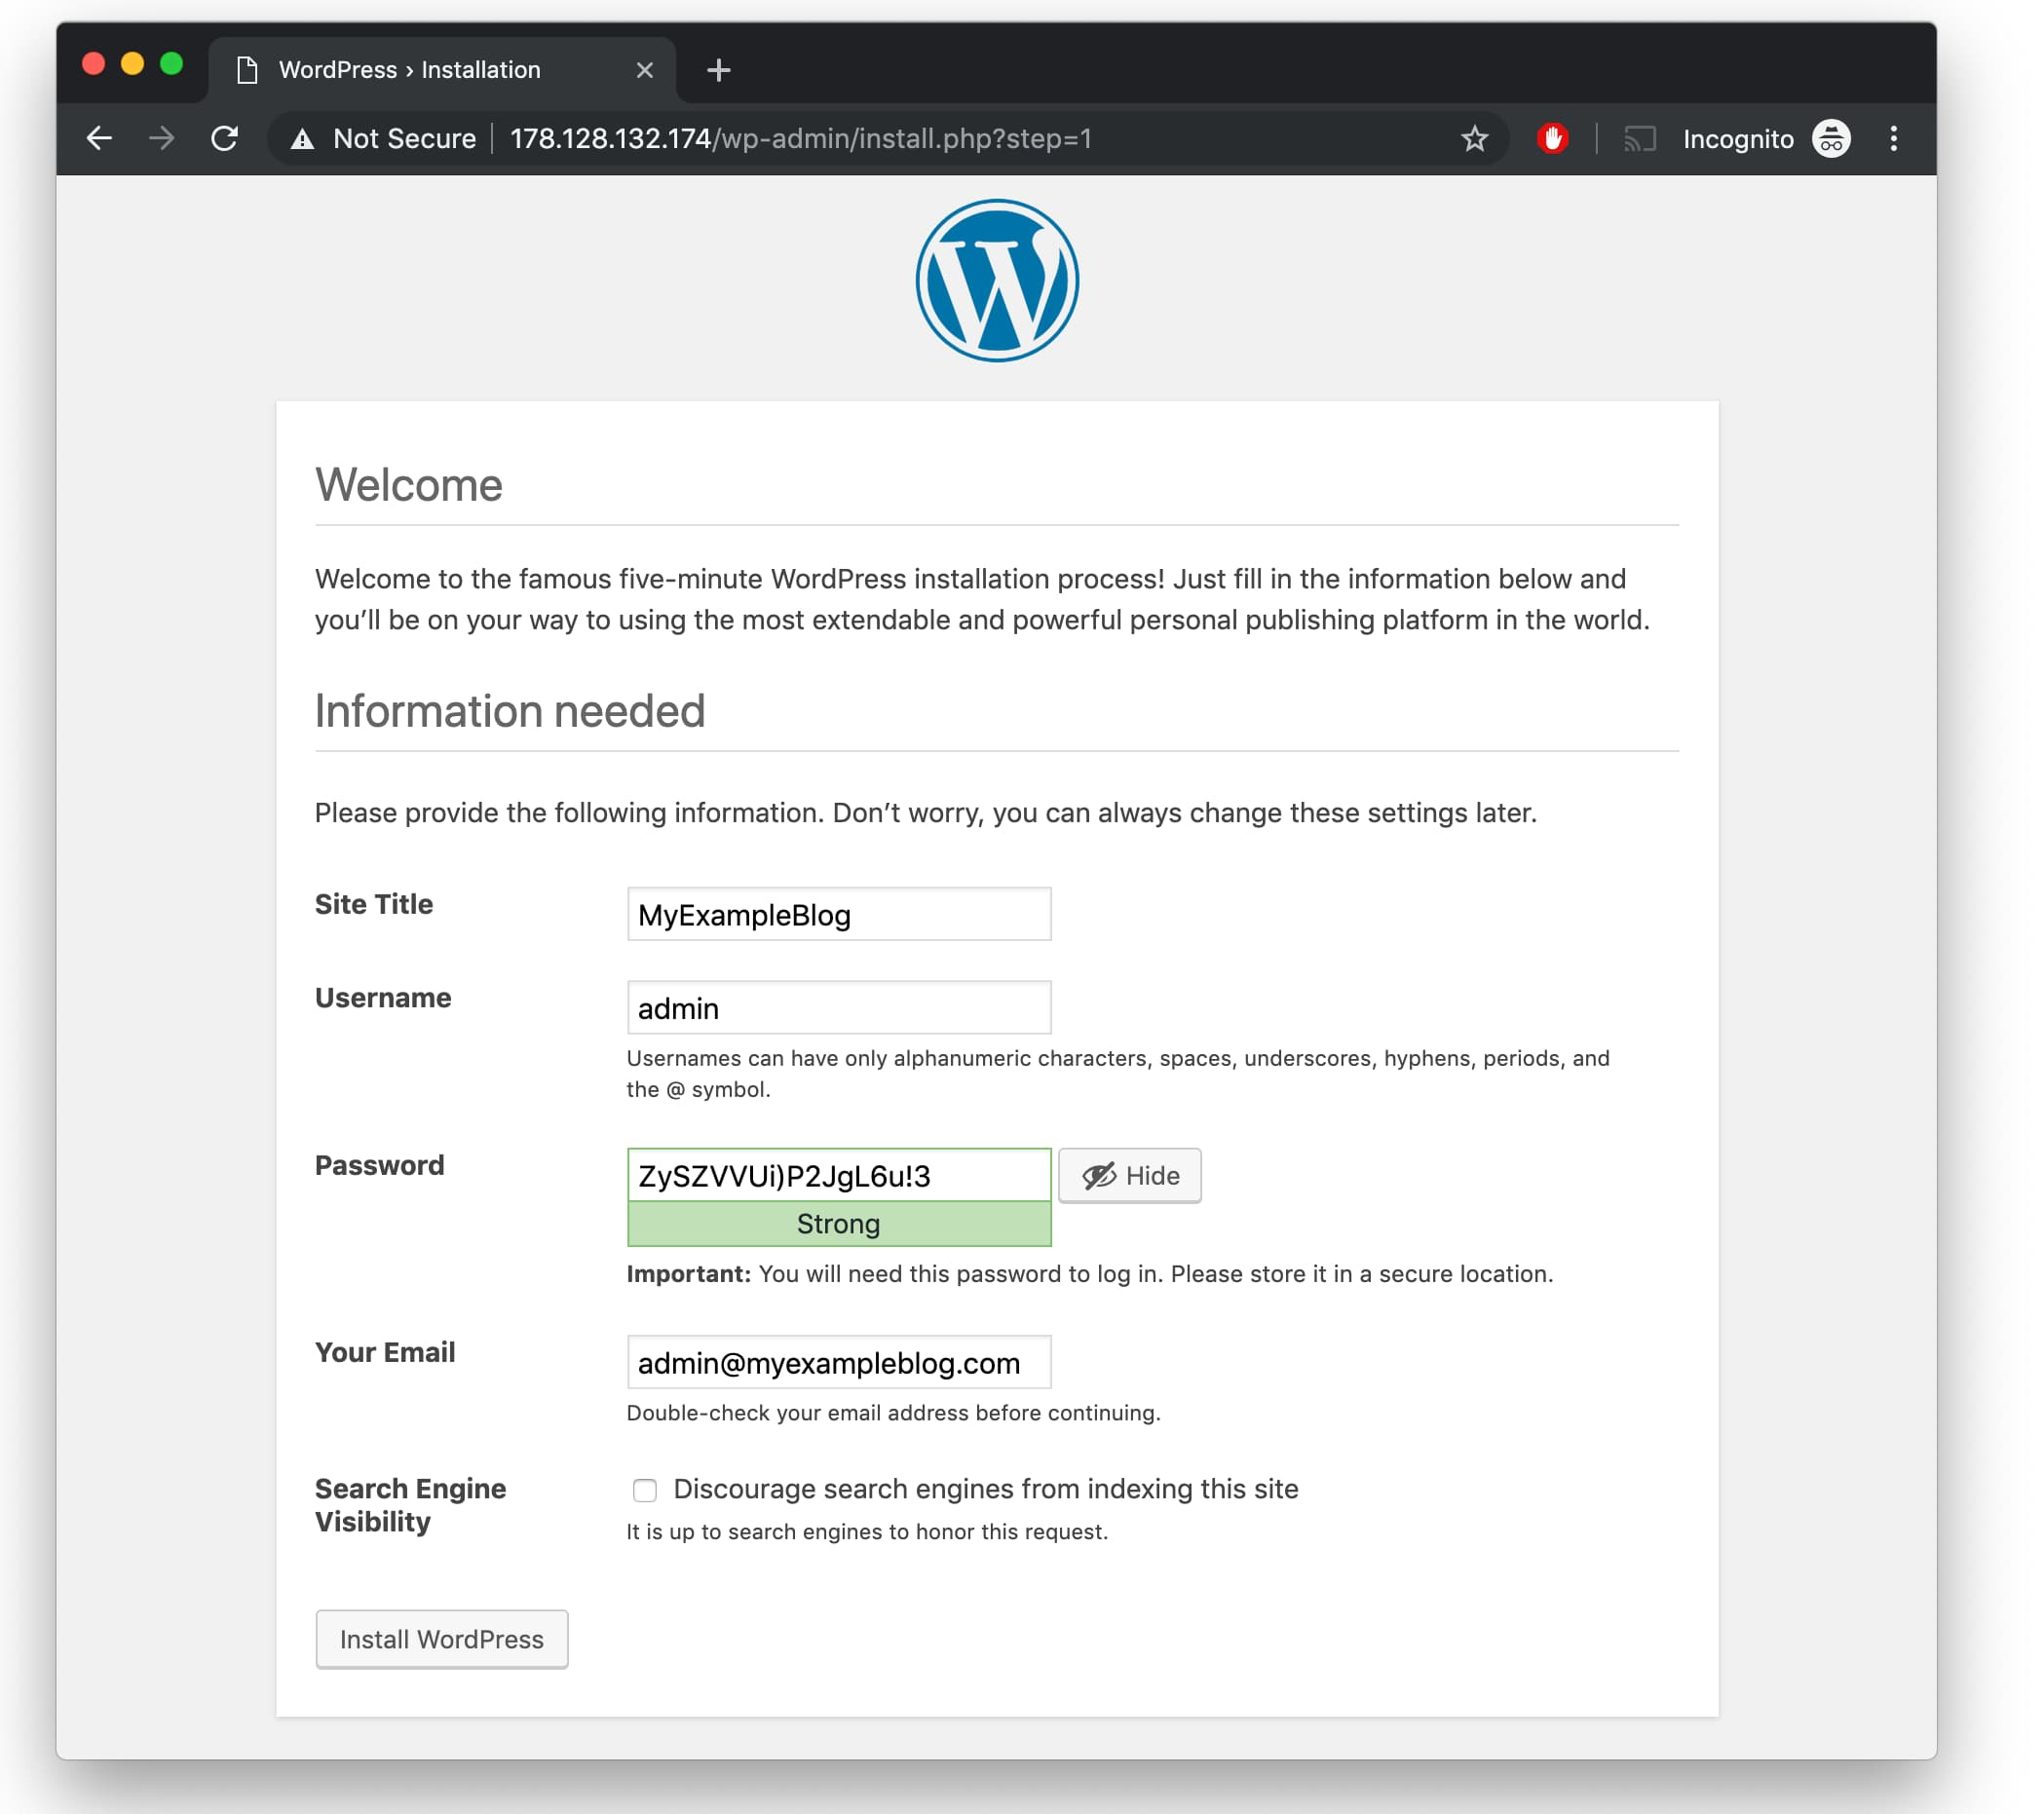 WordPress Username and Password setup on Ubuntu